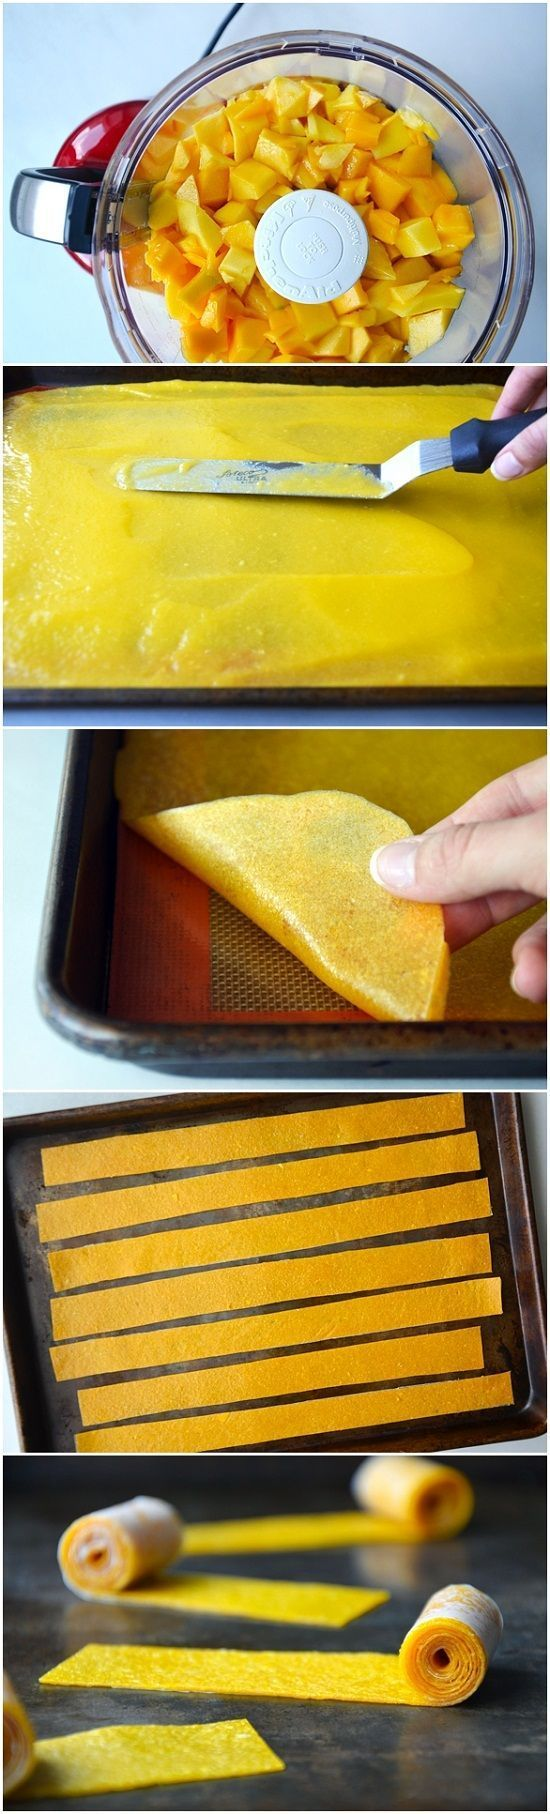 Easy Homemade Mango Fruit Roll-Ups (One ingredient!) #recipe #healthy *NC